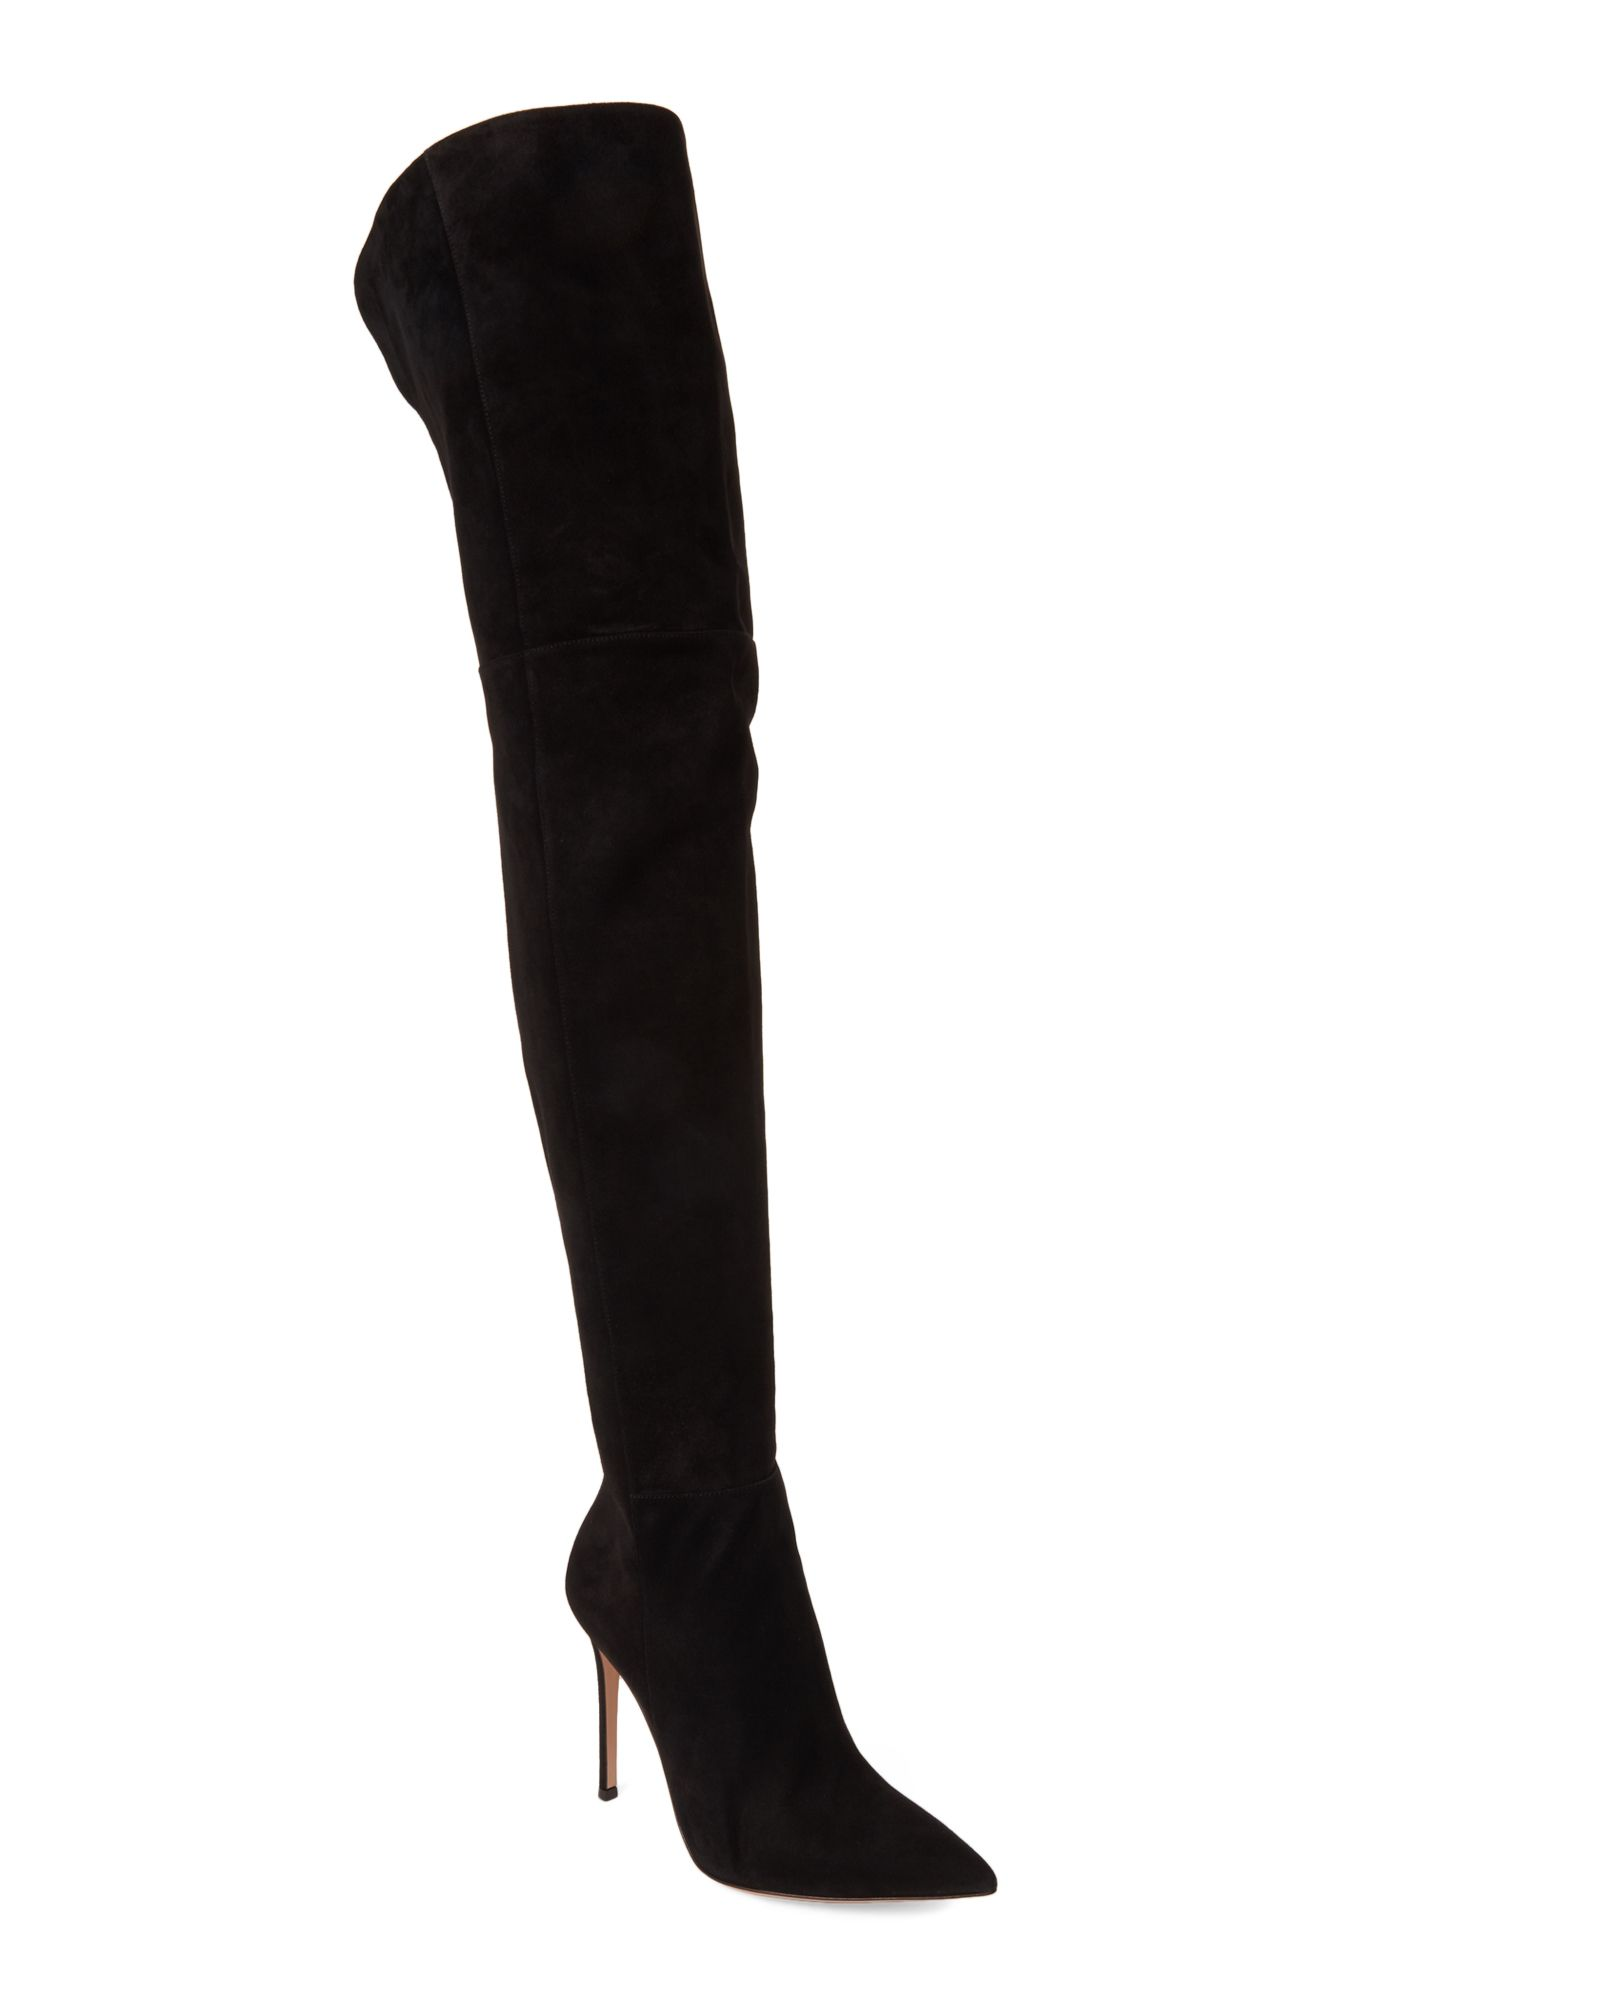 5743f4853f6 Black Lea Cuissard Suede Thigh High Boots | *Apparel & Accessories ...